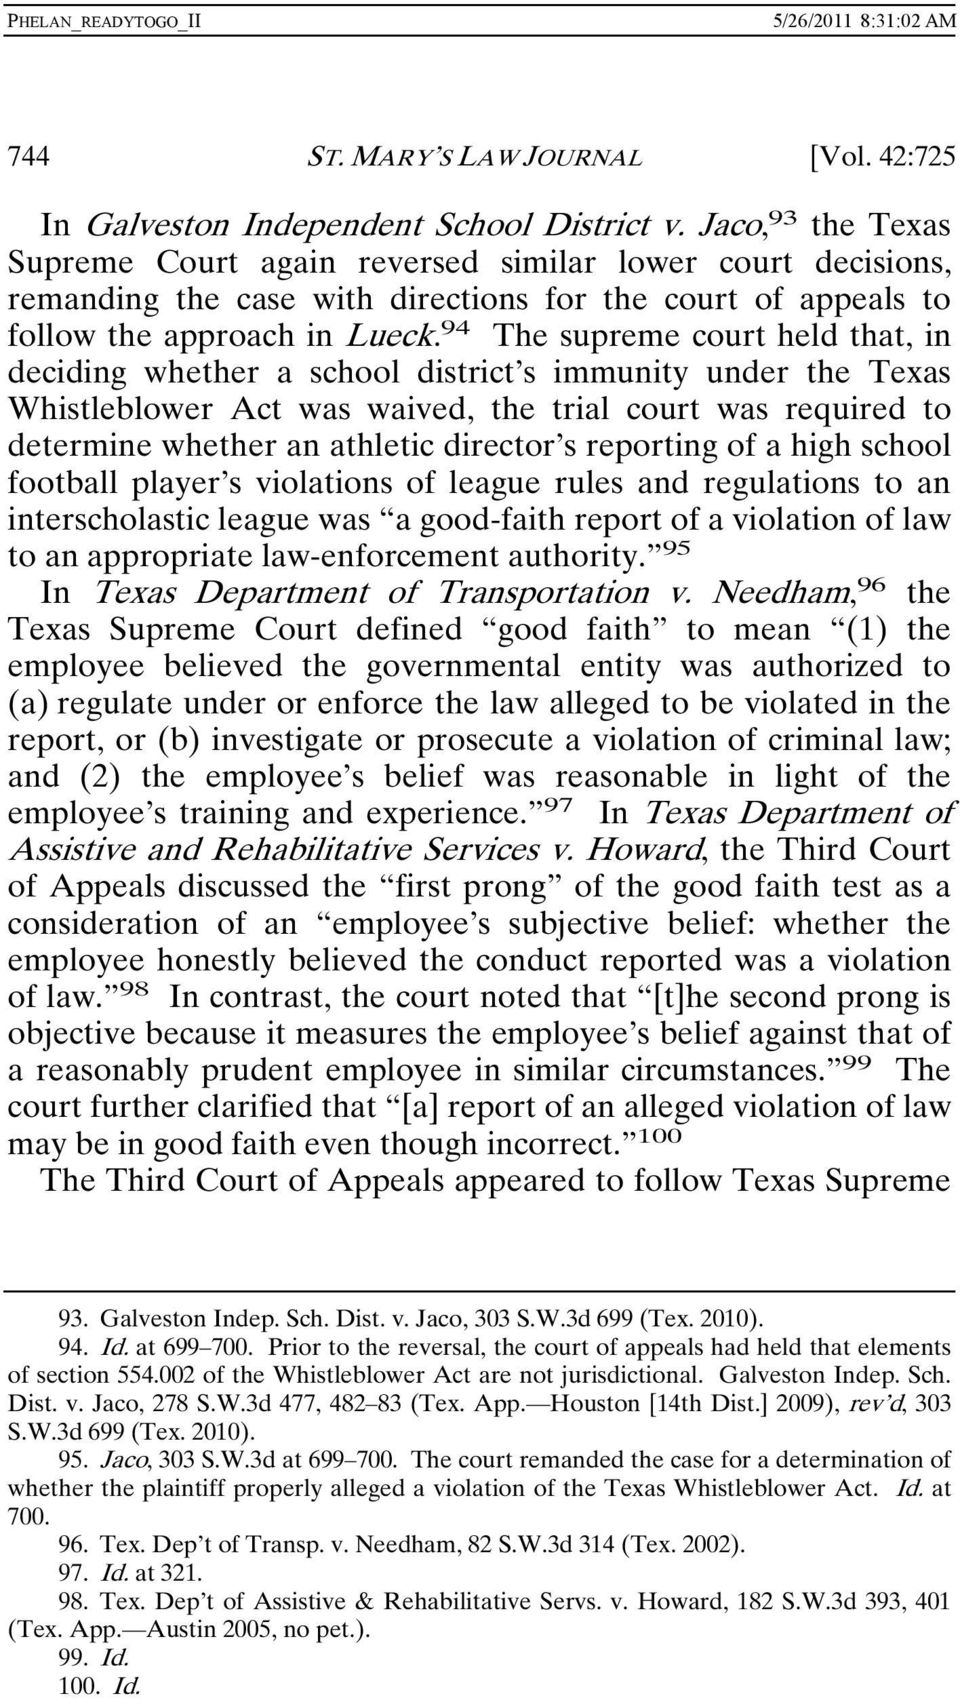 94 The supreme court held that, in deciding whether a school district s immunity under the Texas Whistleblower Act was waived, the trial court was required to determine whether an athletic director s